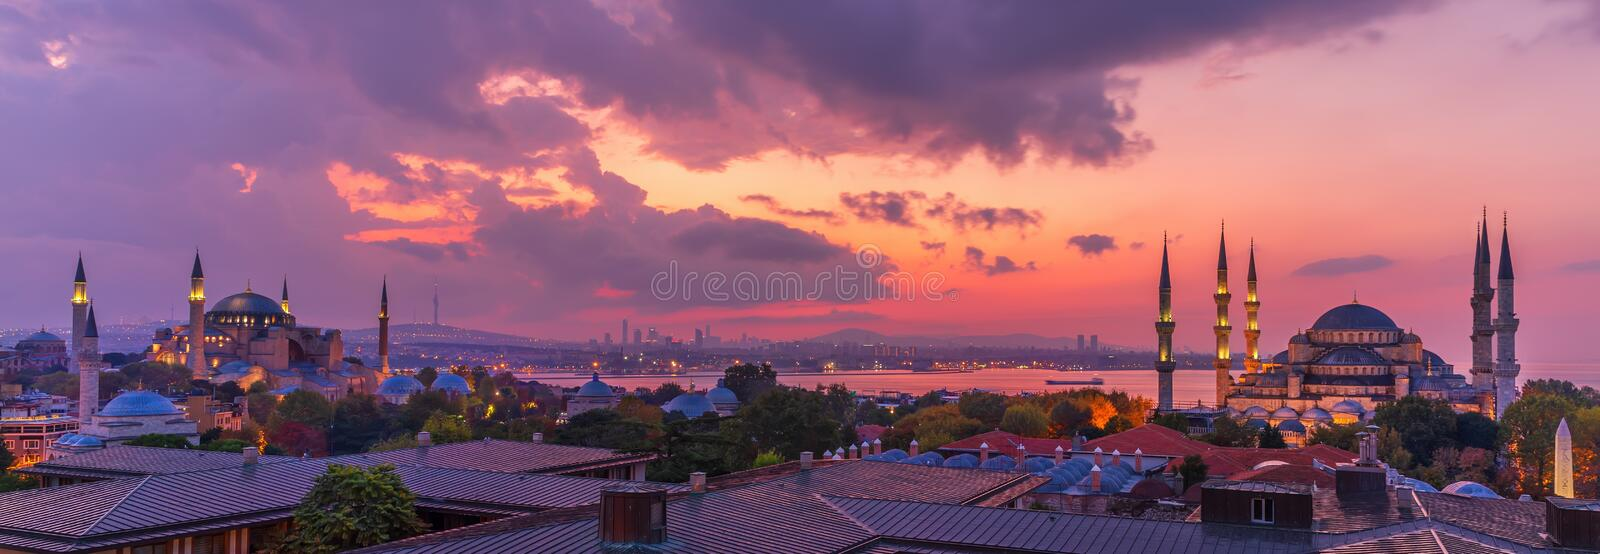 Istanbul sunset, beautiful panorama of the Hagia Sophia and the Blue Mosque, Turkey royalty free stock photos